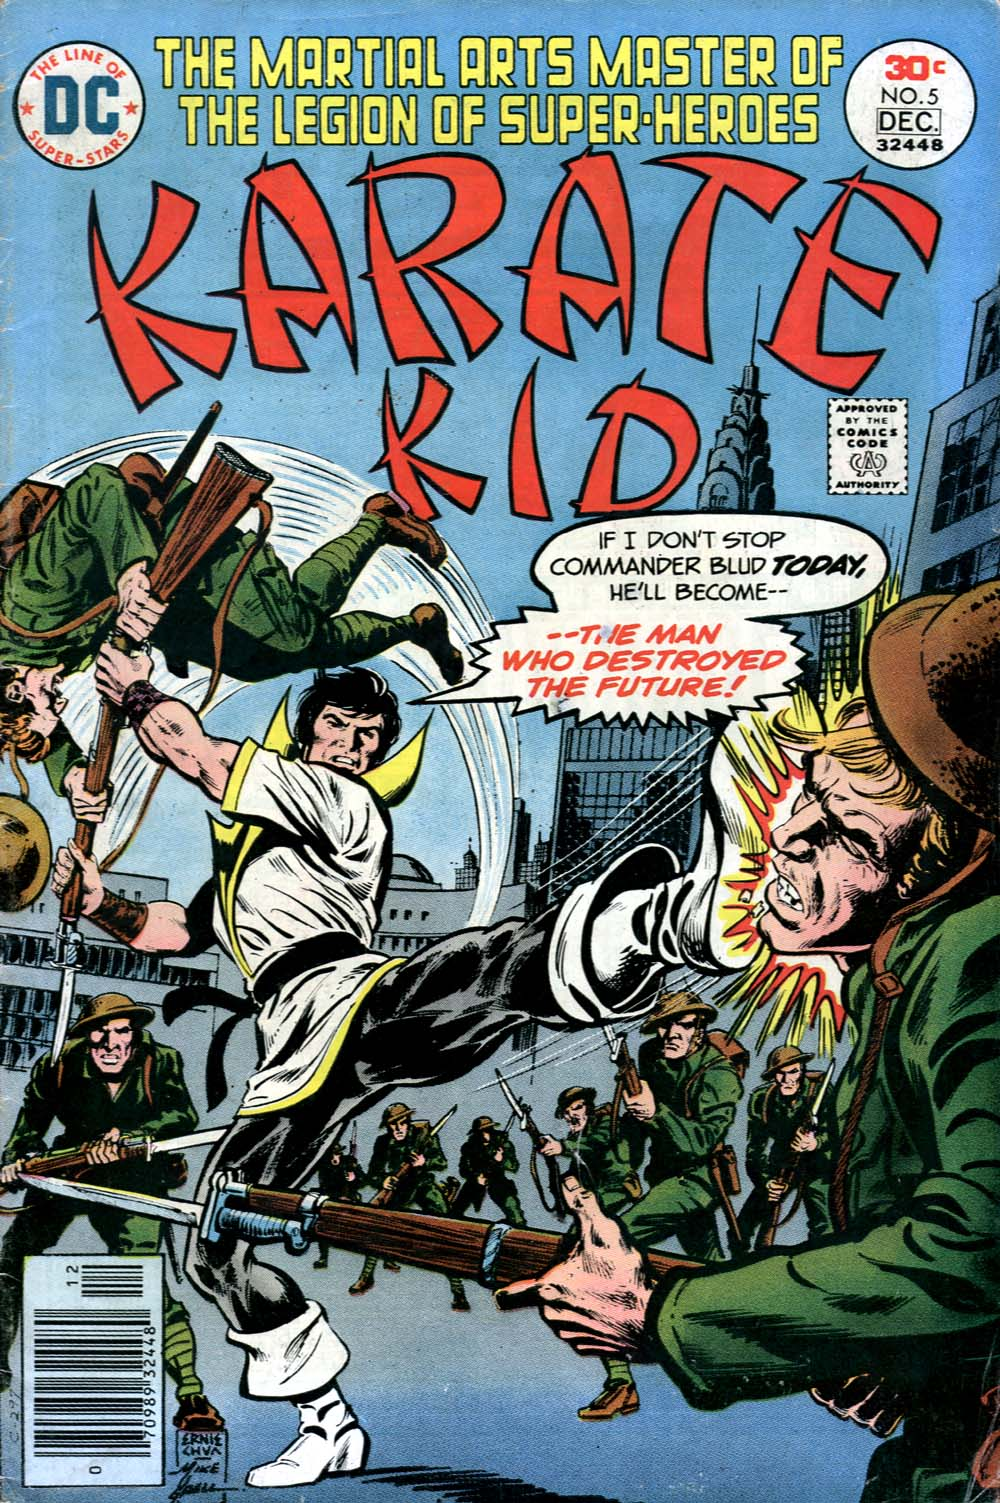 Karate Kid issue 5 - Page 1